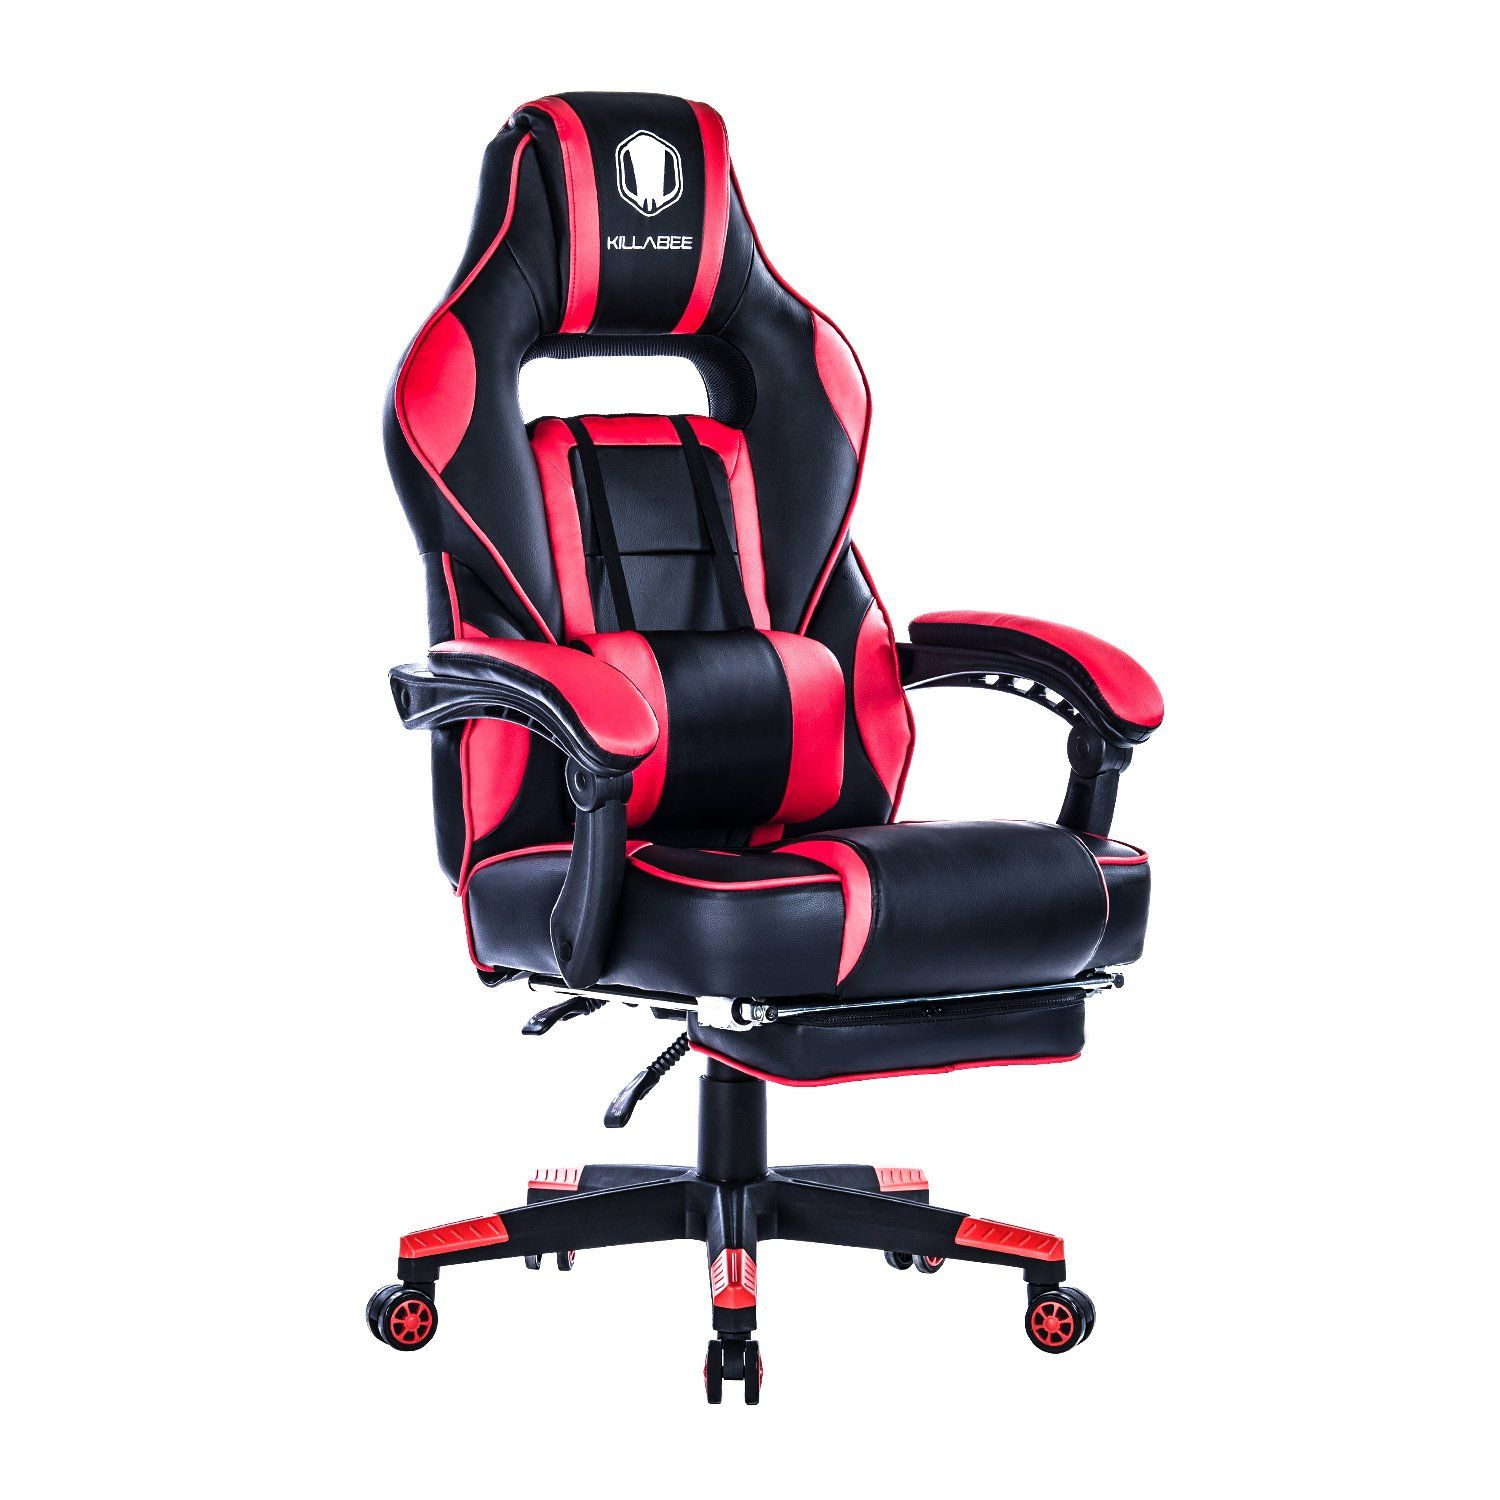 KILLABEE 9015- Red Gaming Chair in 2019 | KILLABEE GAMING